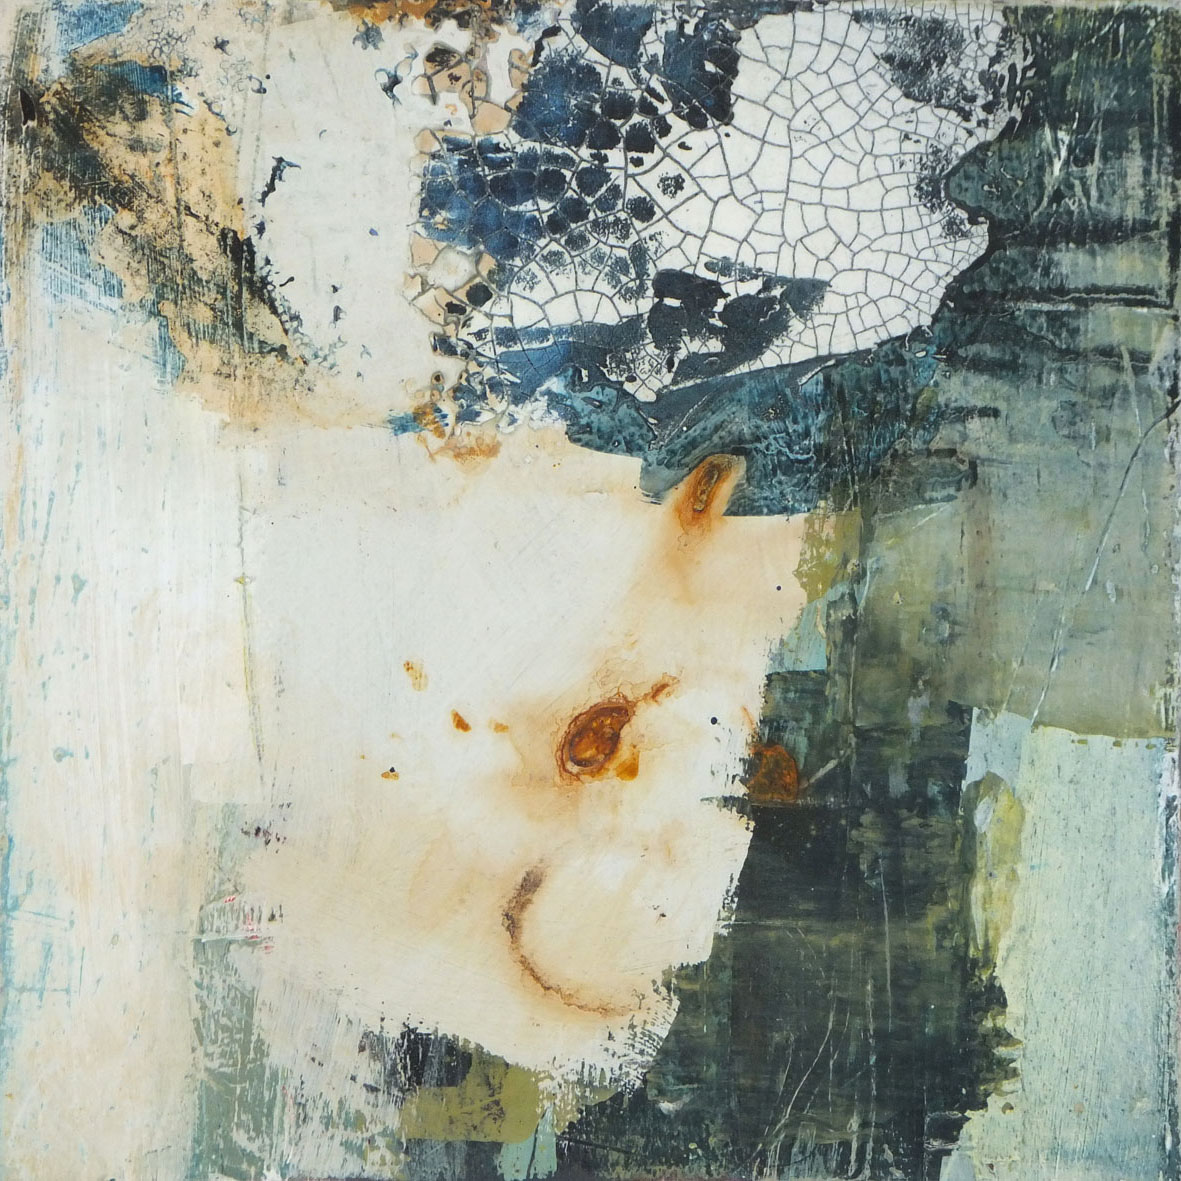 "<span class=""link fancybox-details-link""><a href=""/artists/66-joanne-last/works/7002-joanne-last-weathered-10-2020/"">View Detail Page</a></span><div class=""artist""><strong>Joanne Last</strong></div> <div class=""title""><em>Weathered 10</em>, 2020</div> <div class=""signed_and_dated"">signed on back</div> <div class=""medium"">Acrylic on board</div> <div class=""dimensions"">h. 40 x w. 40 cm </div><div class=""price"">£650.00</div><div class=""copyright_line"">Ownart: £65 x 10 Months, 0% APR</div>"